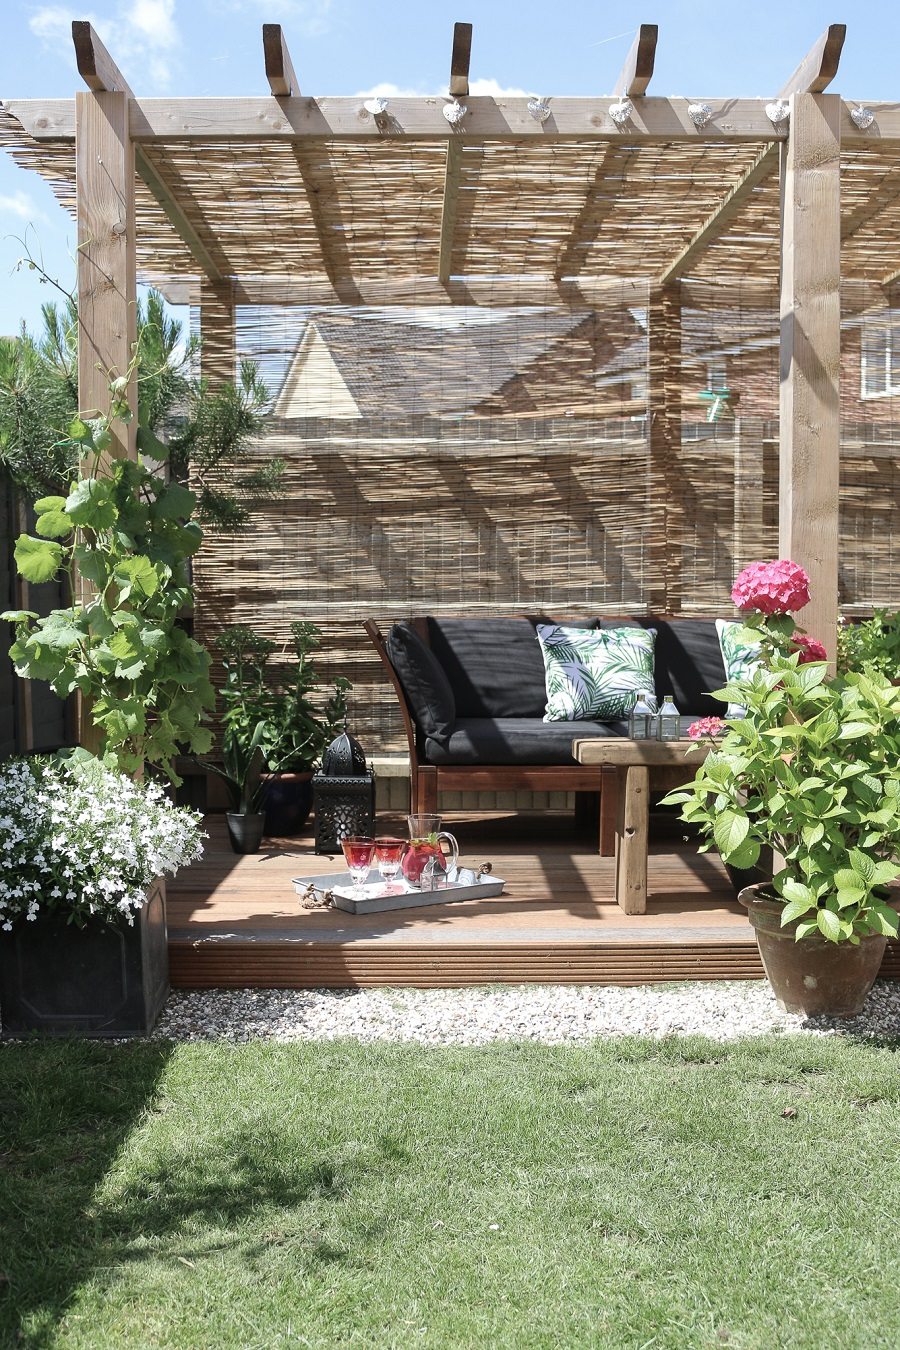 How to Improve Your Garden Without Spending a Penny